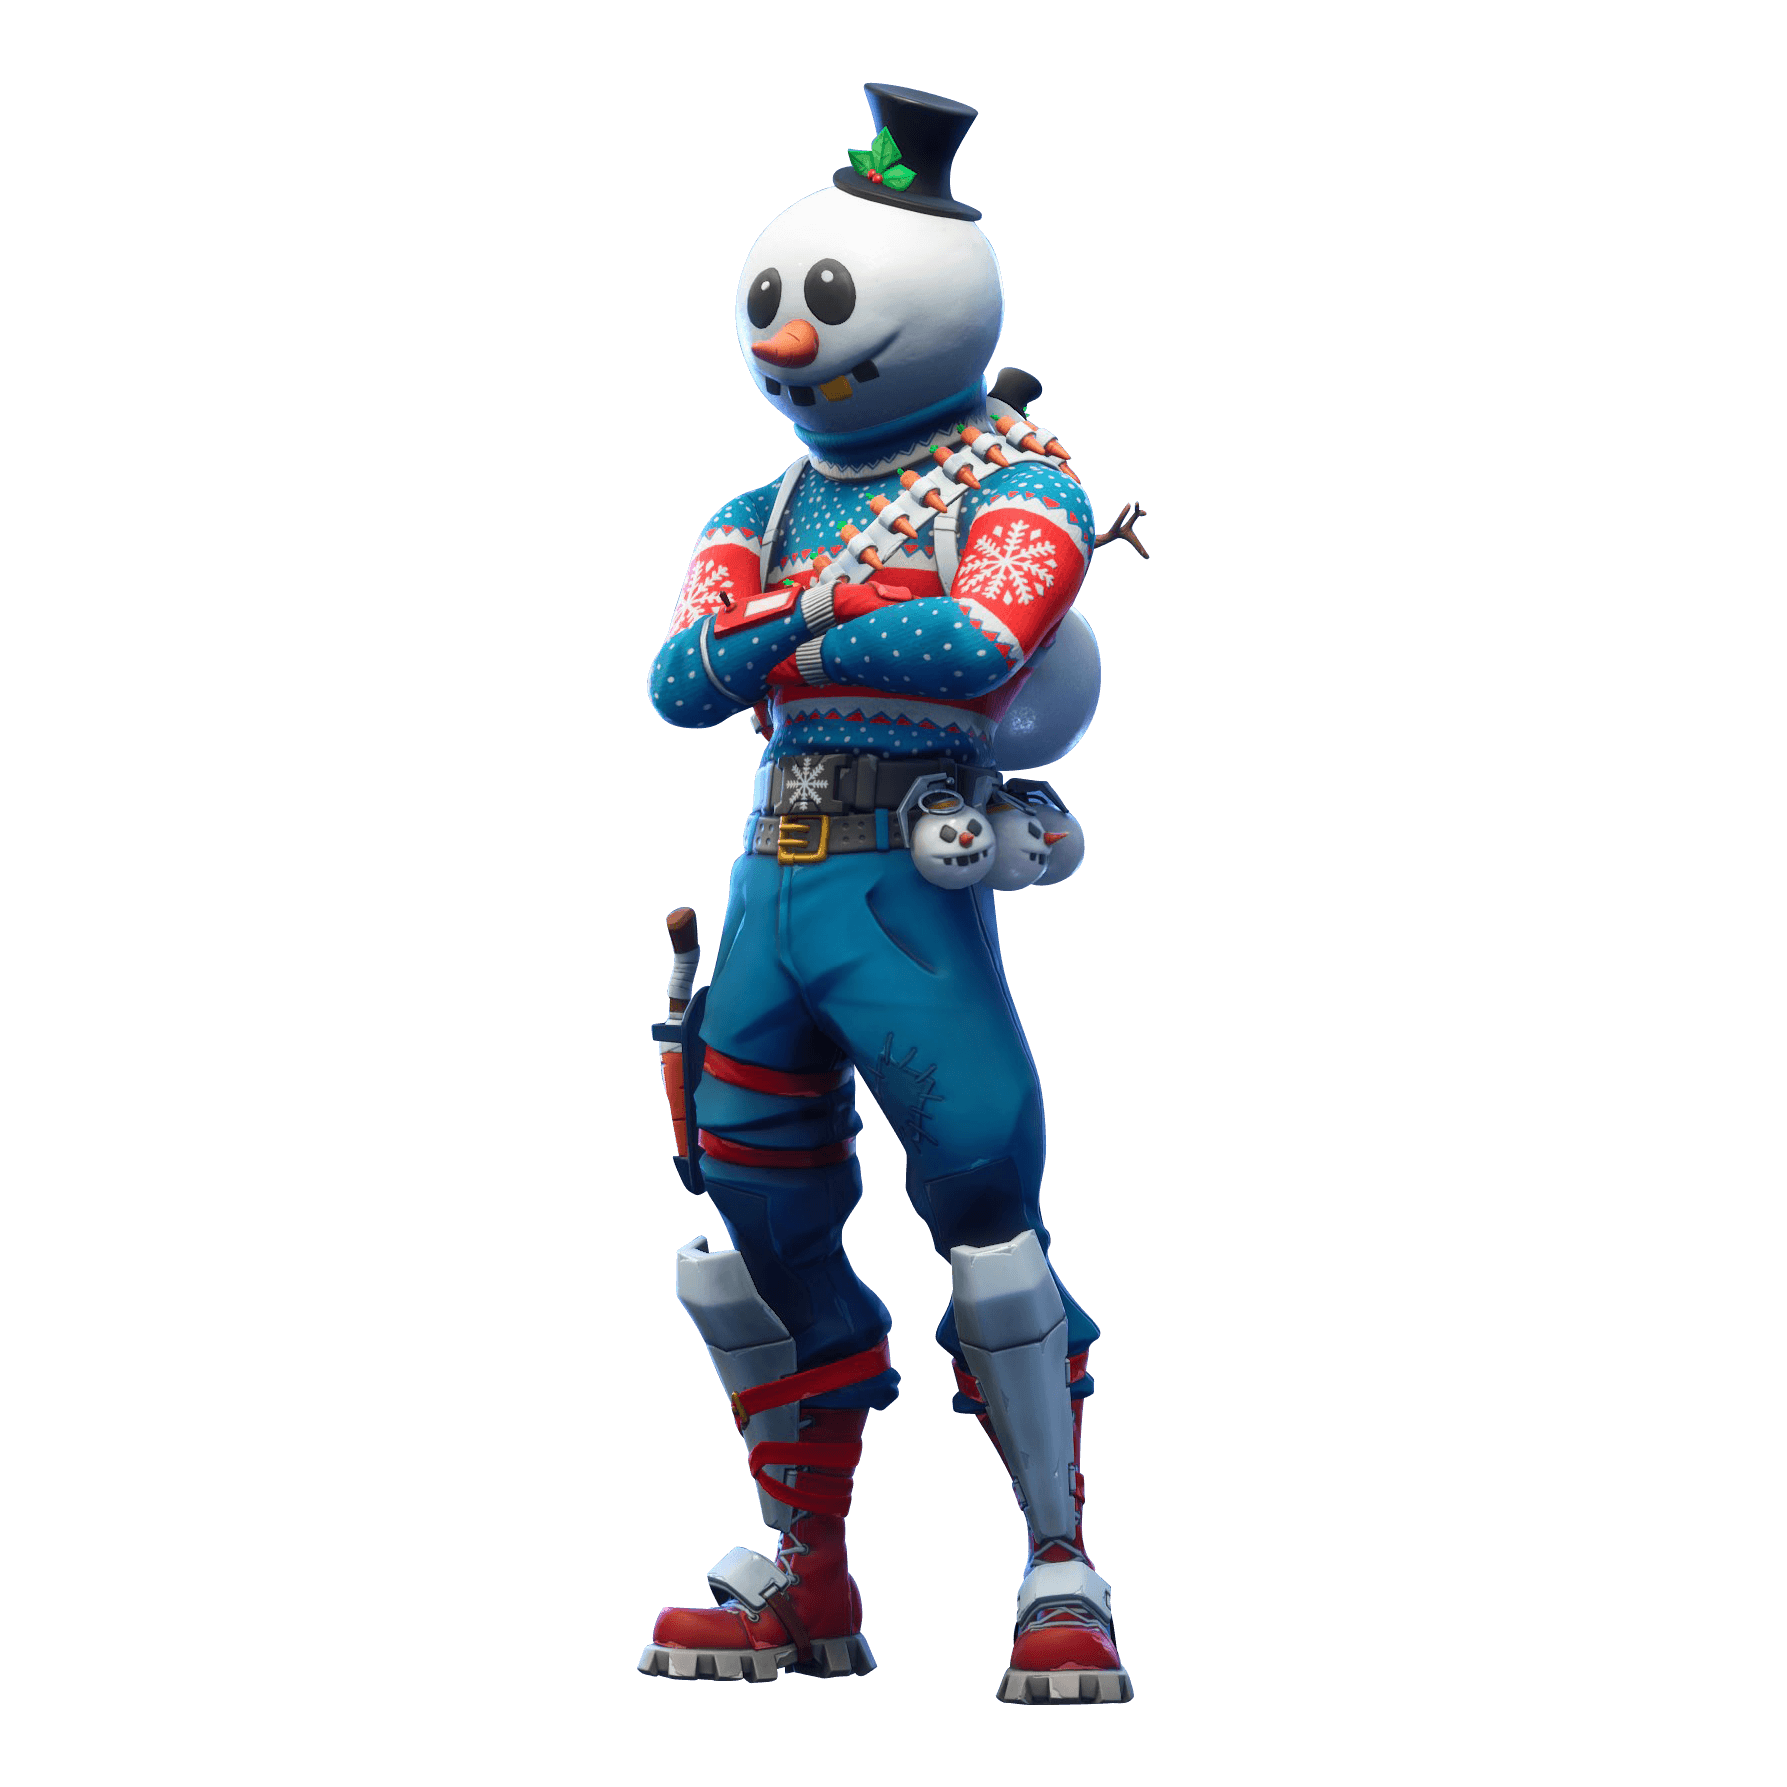 Slushy Soldier Wallpapers